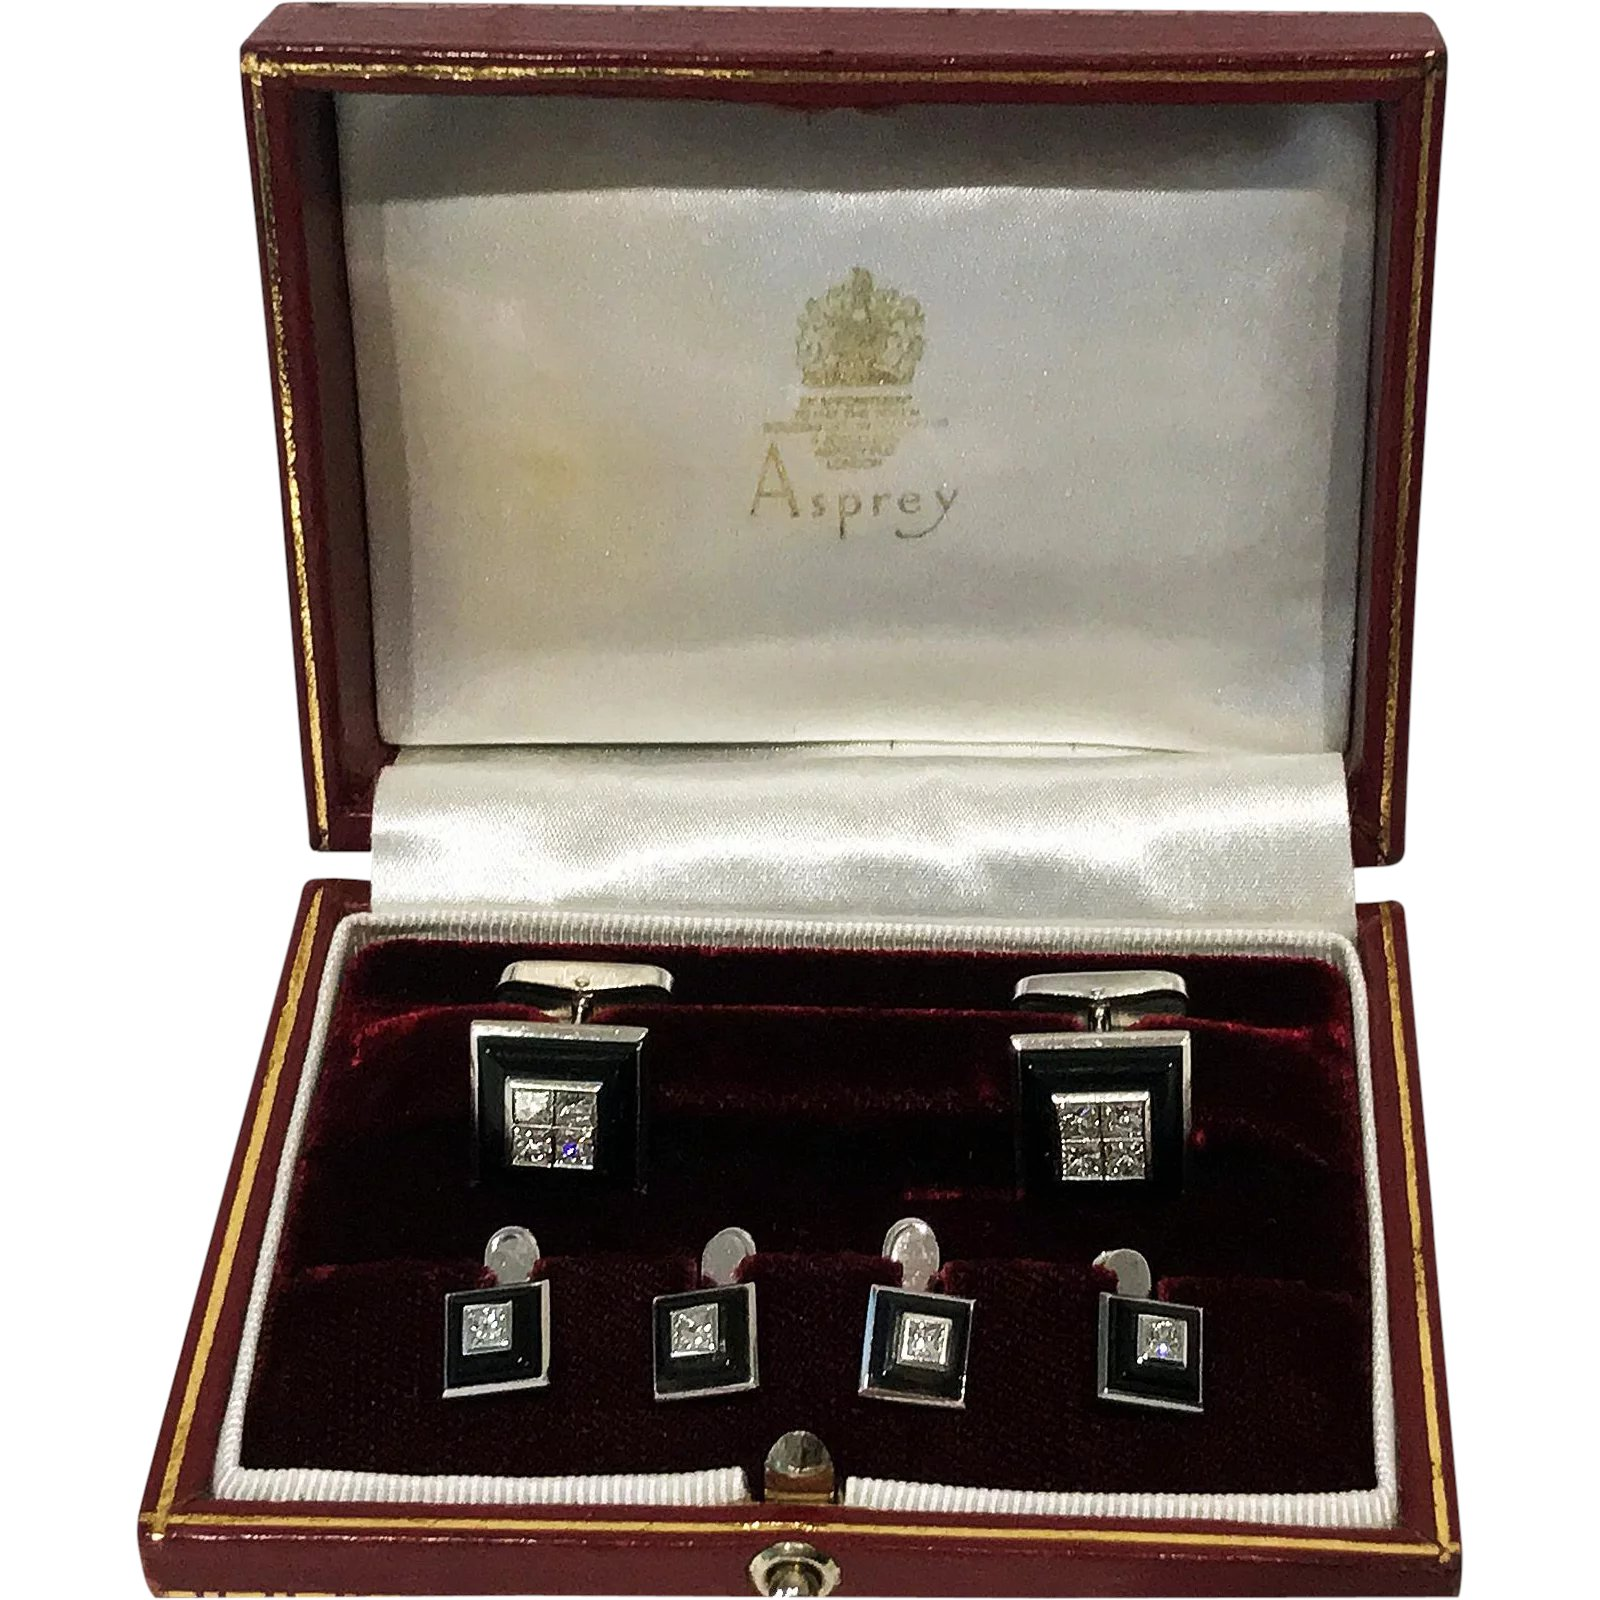 b960f0b711a7 Asprey 18K Onyx and Diamond white gold Studs and links Tuxedo Set in :  Louis Wine Antiques | Ruby Lane